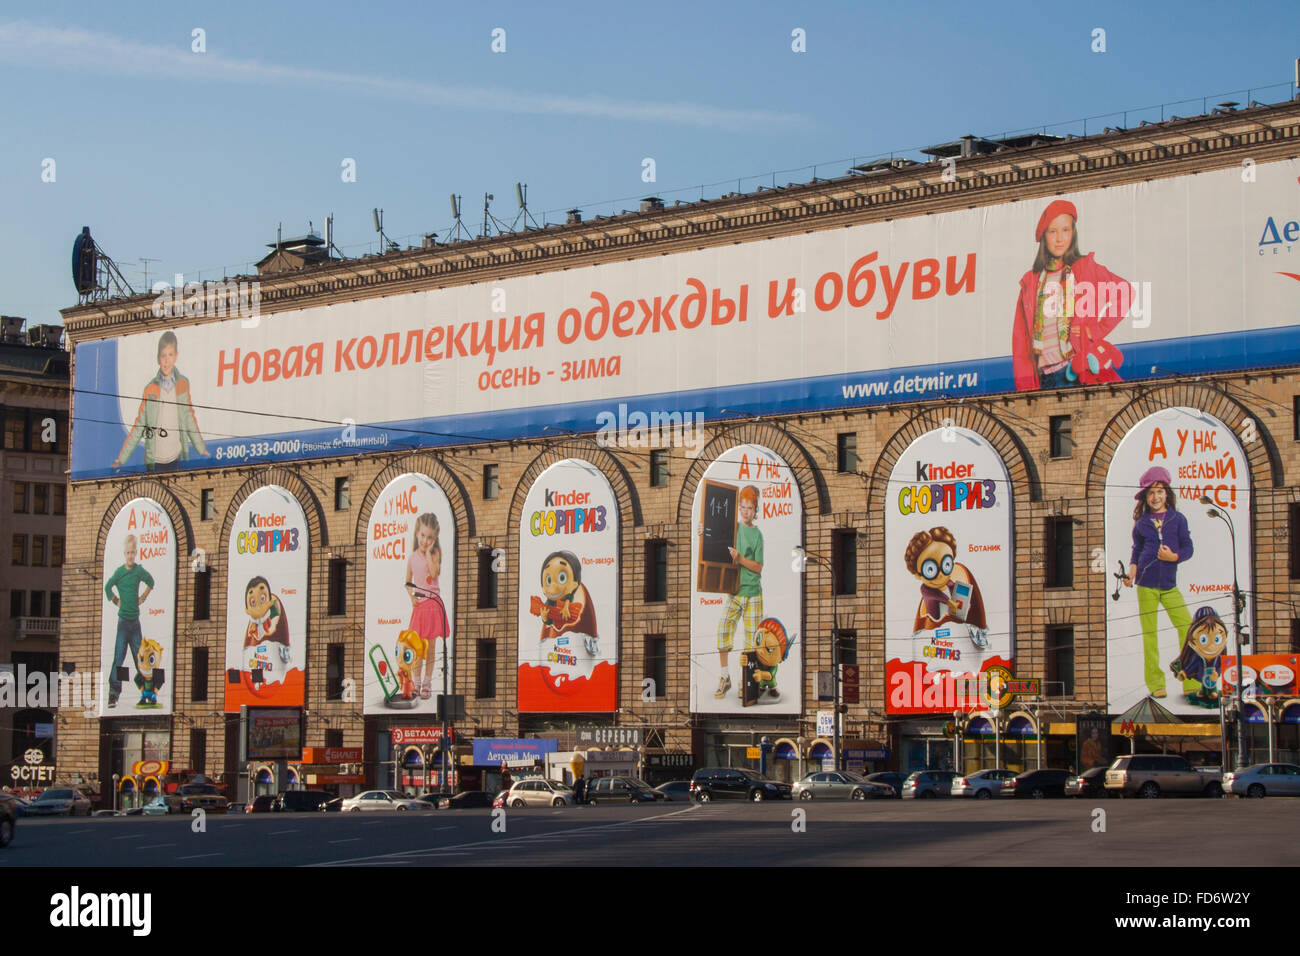 Holiday for children - Childrens World on Lubyanka Square